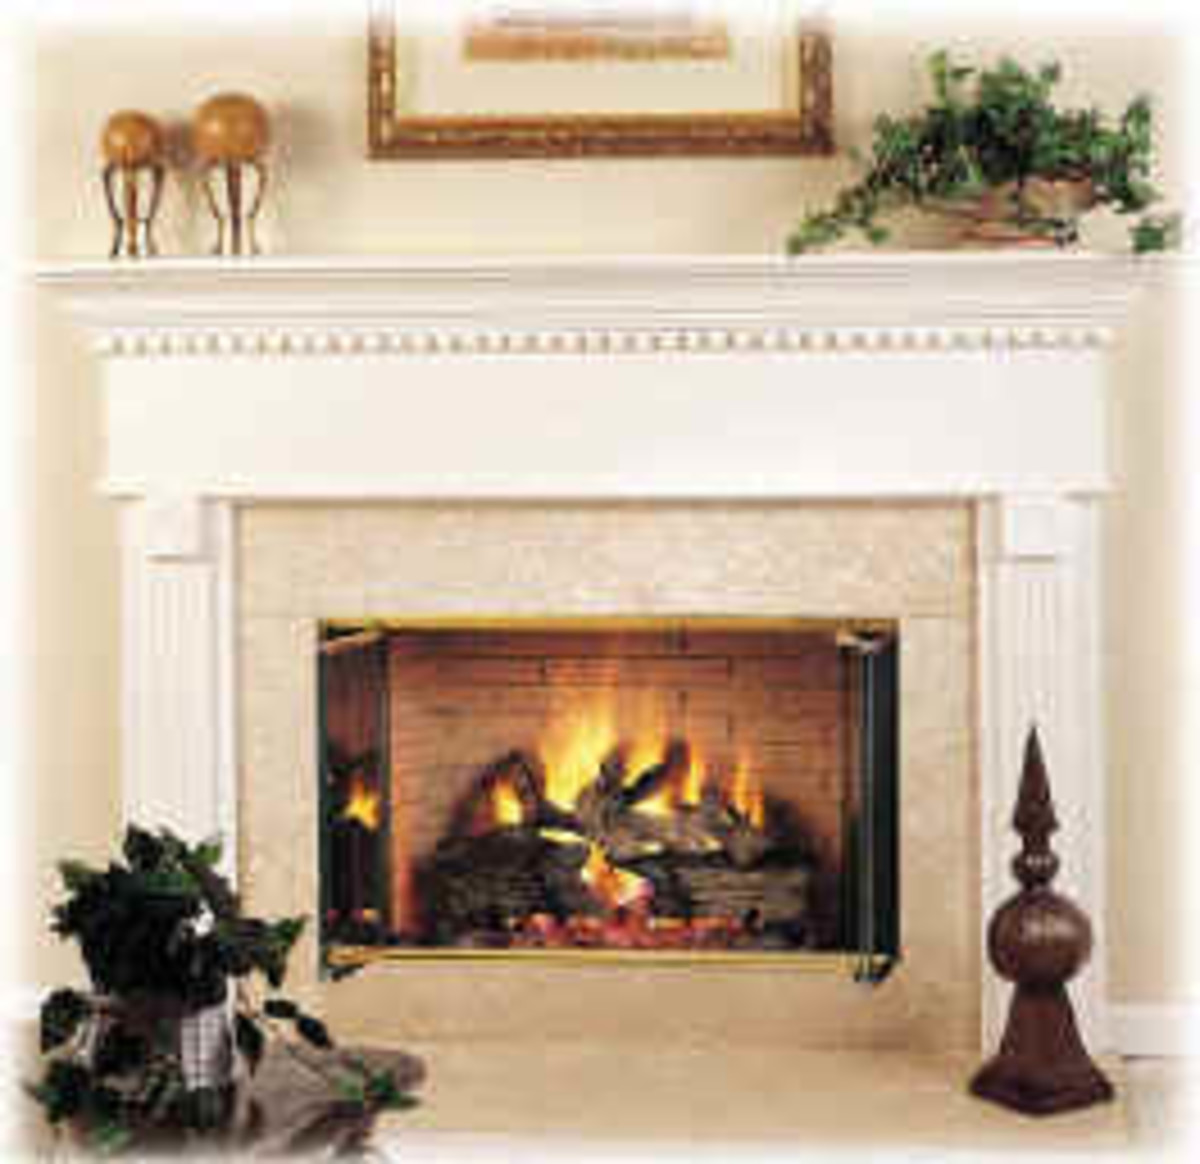 beautiful home décor with traditional fireplace complete with all accessories